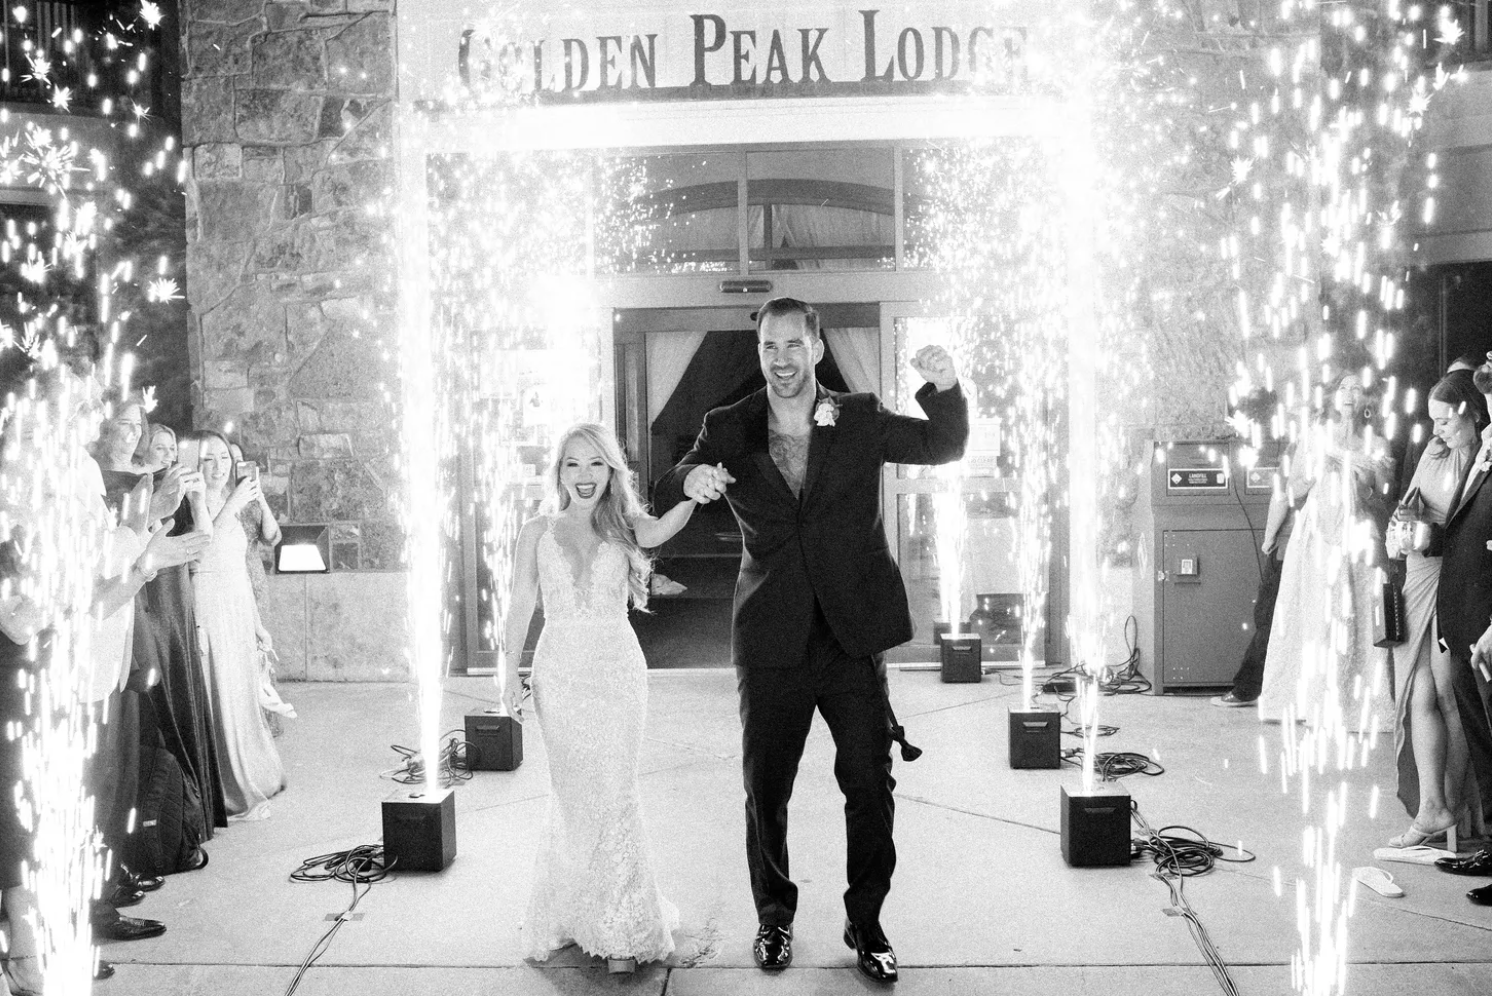 Florida-based Melissa and Steven come to Vail, Colorado, every year to ski and have fallen more and more in love with the mountain town over the years. So, when it came time to settle on a location for their elegant wedding with an all-white color palette, Vail was a no-brainer.